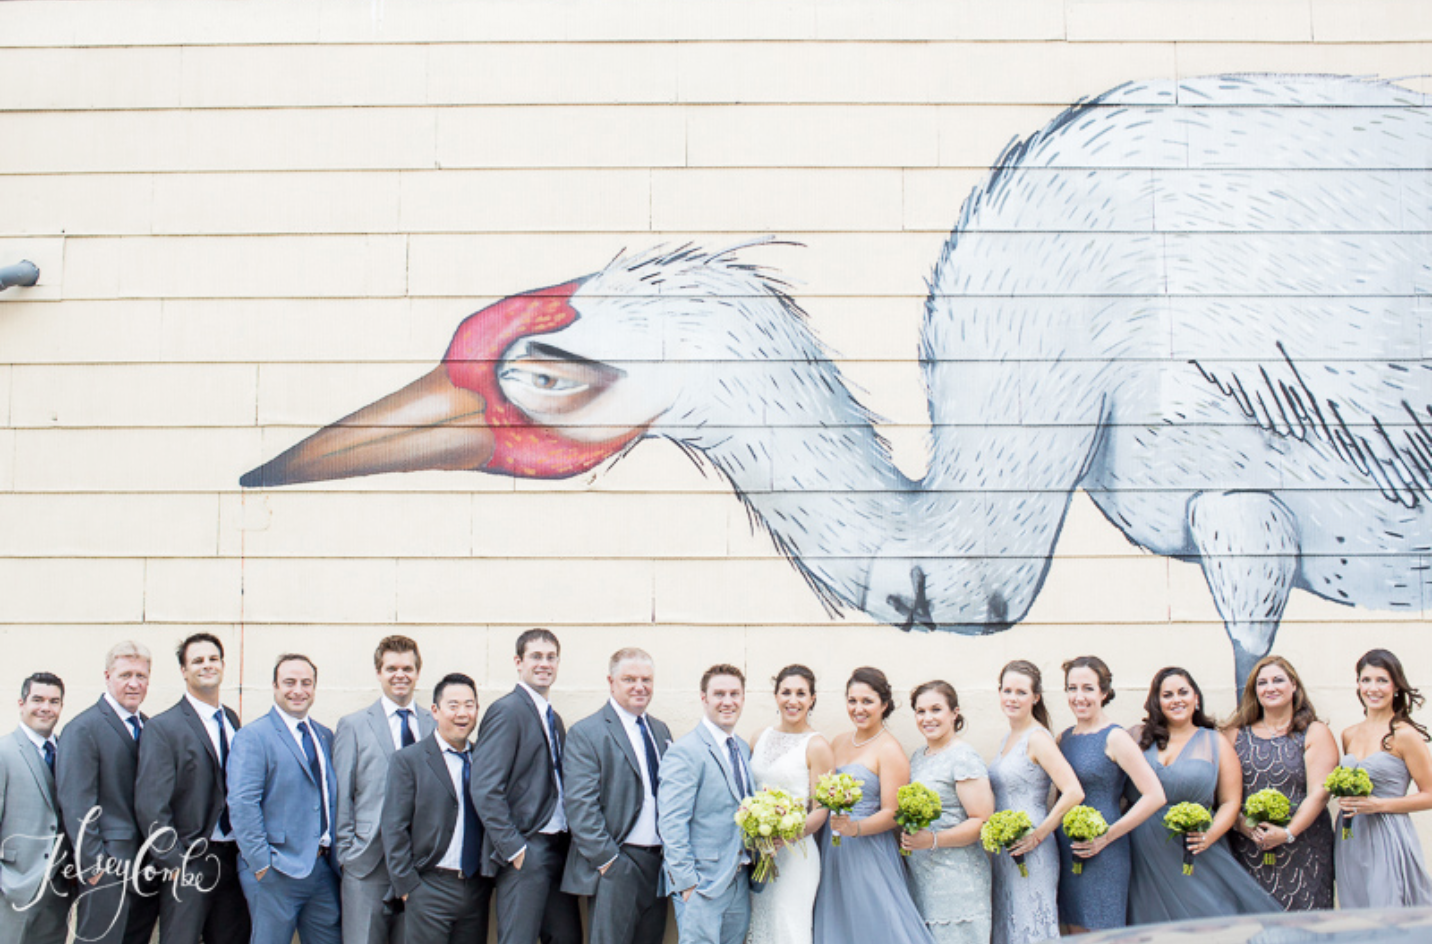 The wedding party with some Williamsburgh street art